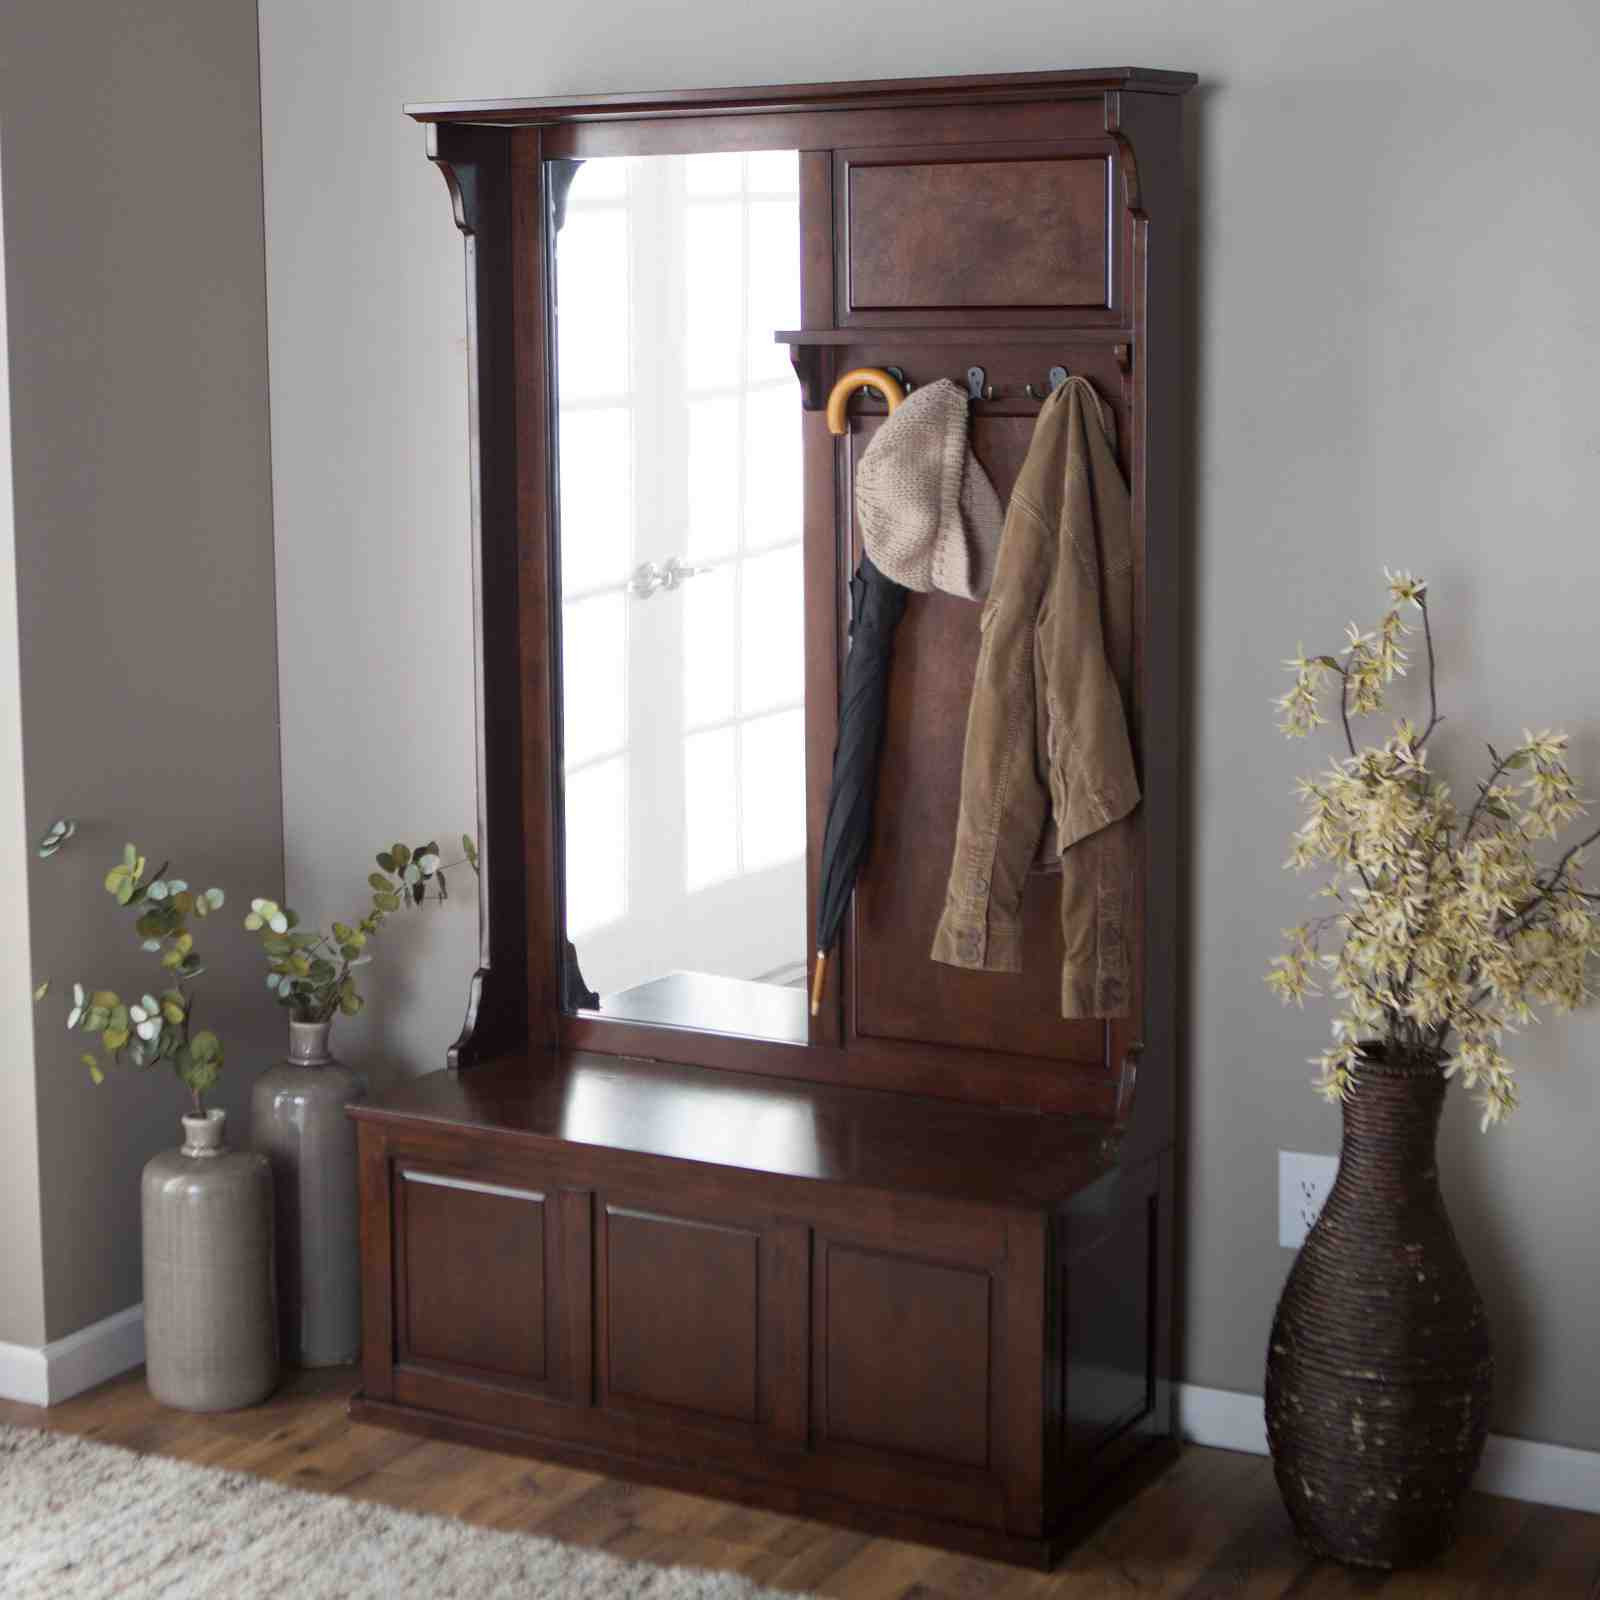 Hall Tree With Storage Bench  Hall Tree Storage Bench How to Purchase Home Furniture